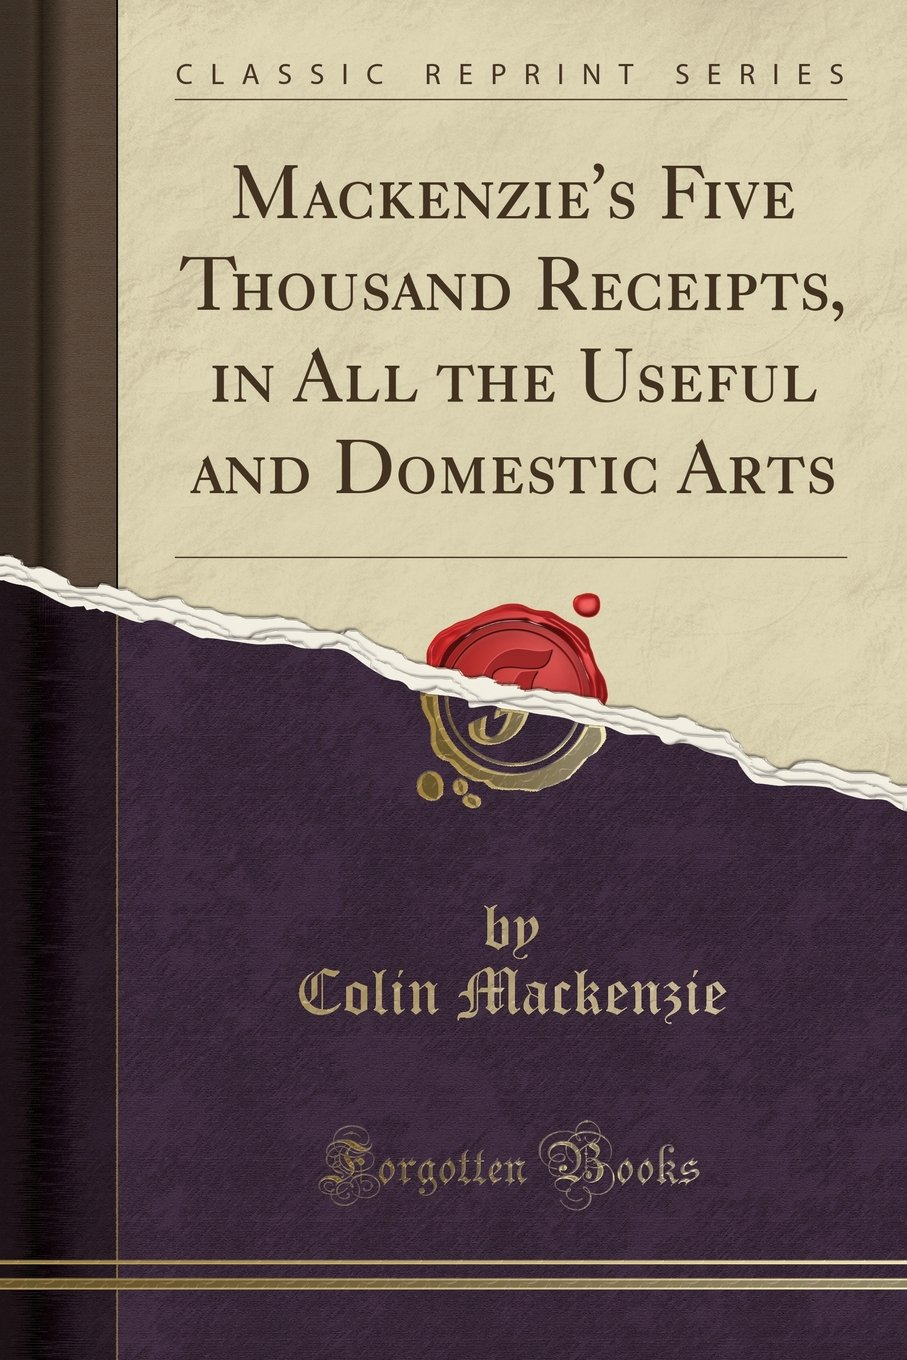 Mackenzie's Five Thousand Receipts, in All the Useful and Domestic Arts (Classic Reprint) ebook